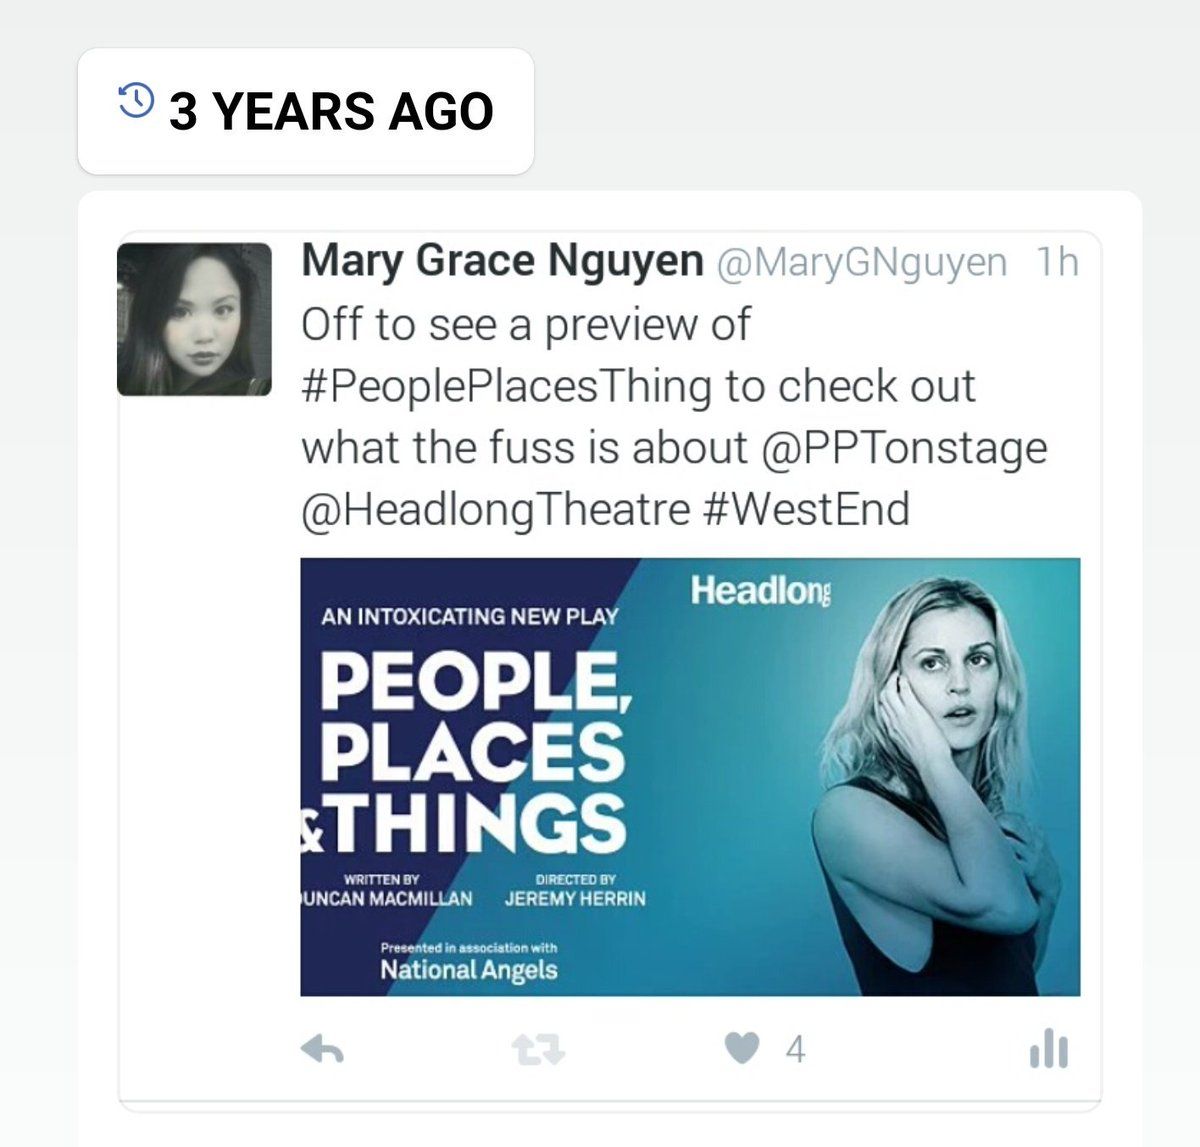 test Twitter Media - Major throwback! Who remembers this mind-blowing production? Hard to believe it was staged THREE years ago. @HeadlongTheatre @PPTonstage #tbt https://t.co/rztBMsZmjK